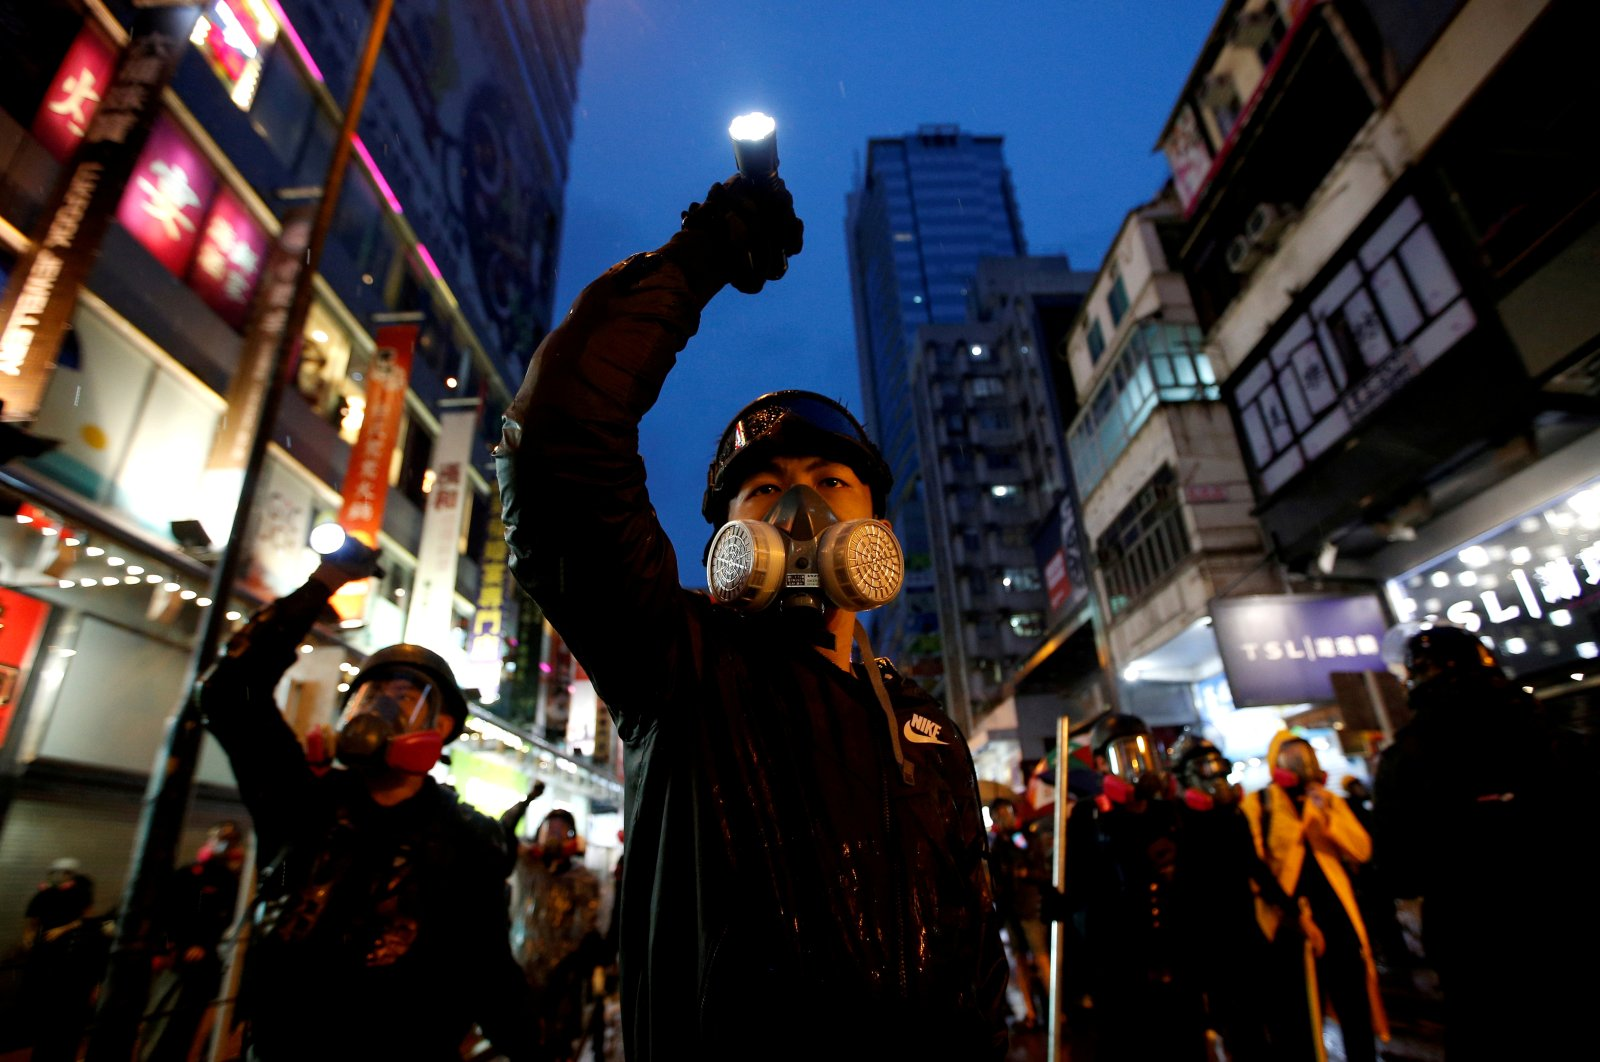 Demonstrators protesting the proposed extradition bill aim their flashlights toward riot police as they are chased through the streets of Hong Kong, China, Aug. 25, 2019. (Reuters Photo)